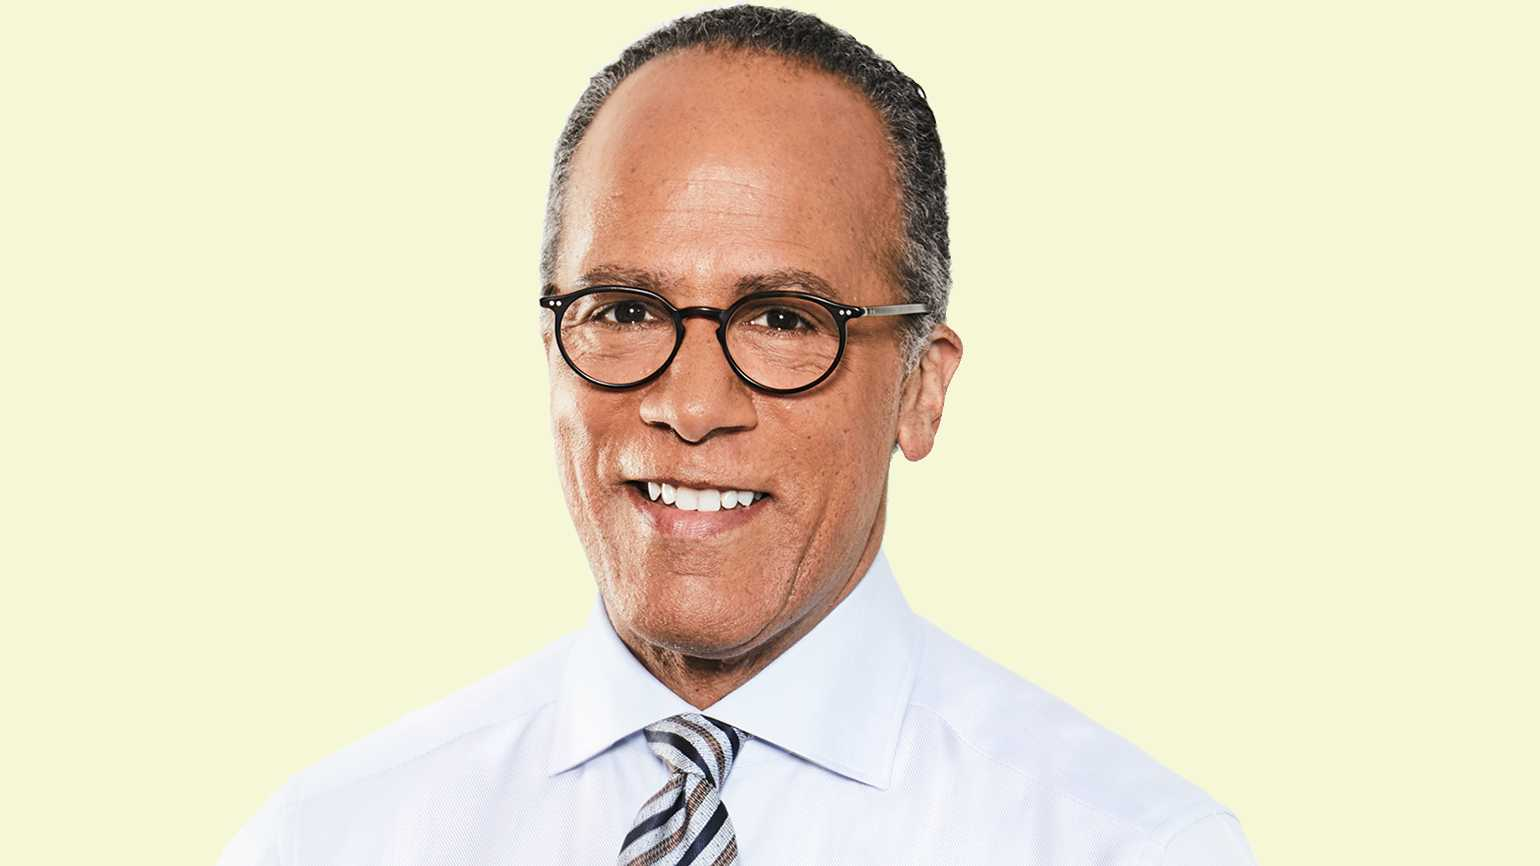 NBC News anchor Lester Holt